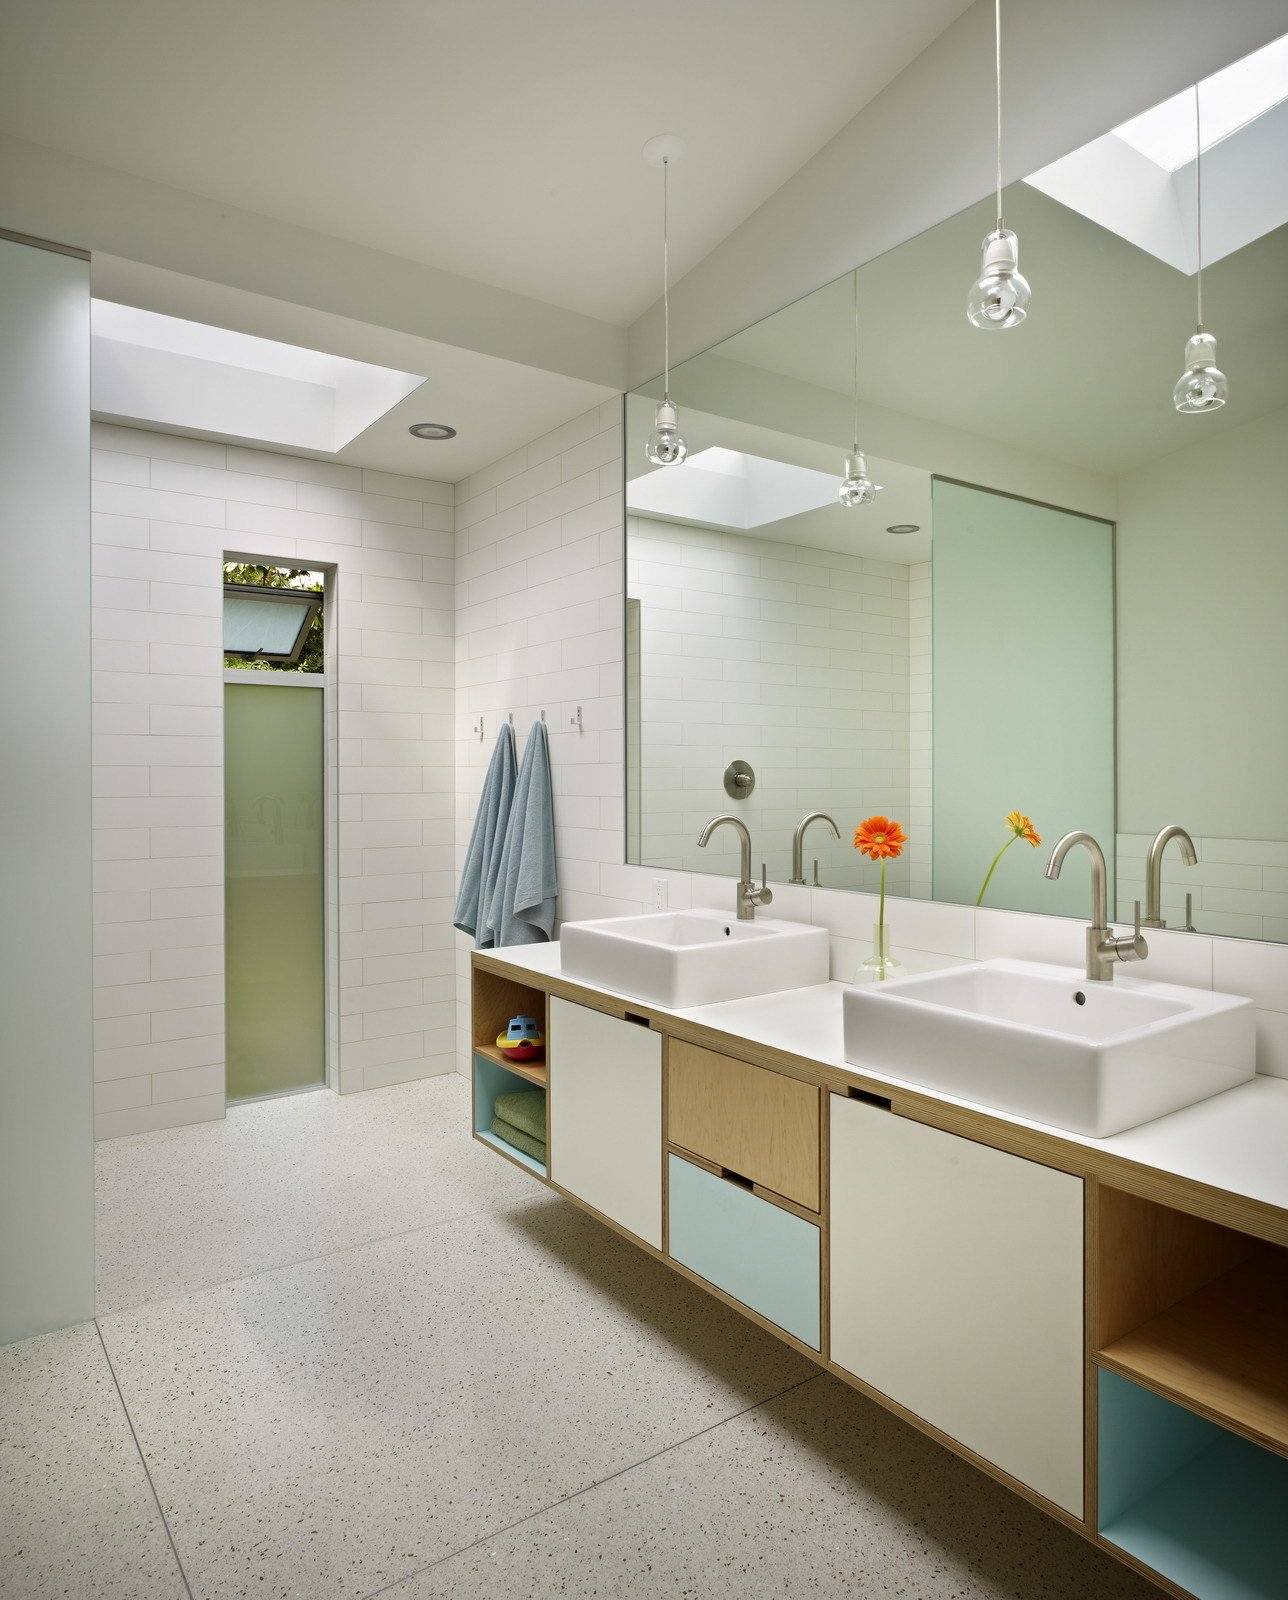 In the kids' bathroom, a colorful custom vanity complements the clean, white palette. Mirrors extend up into a skylight to draw light in over the vanity.  Midcentury Homes by Dwell from A Mid-Century Renovation in Washington